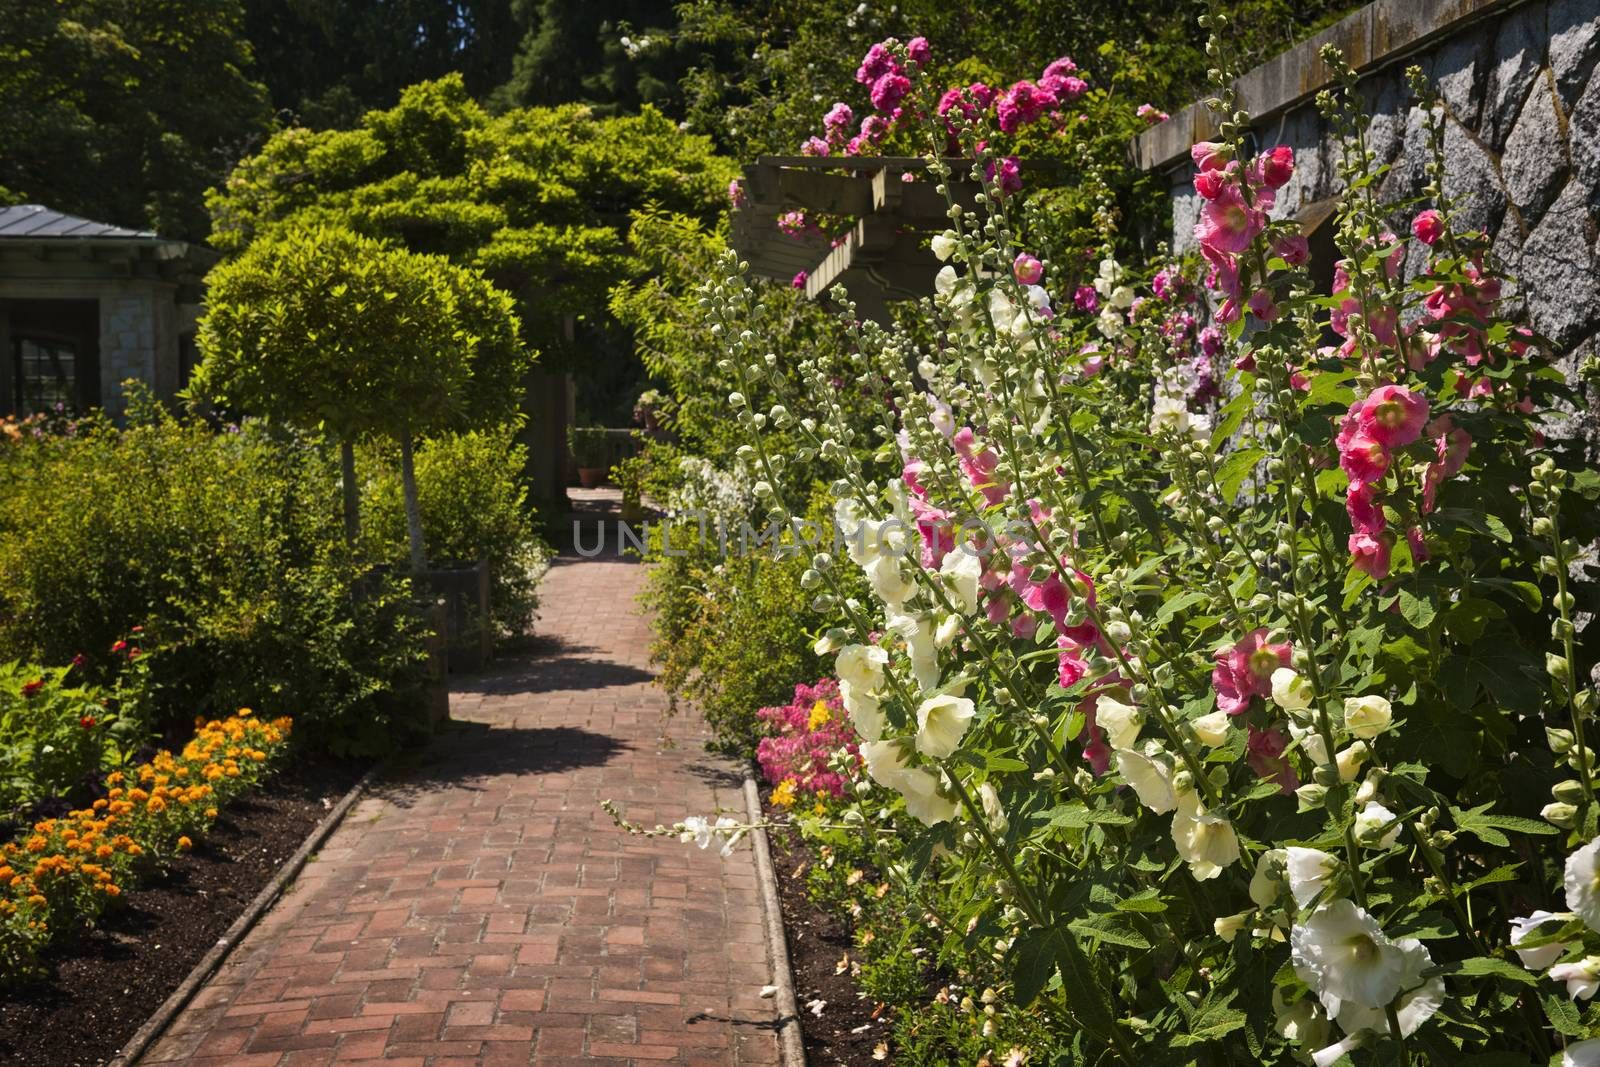 Lush summer garden with paved path and blooming flowers